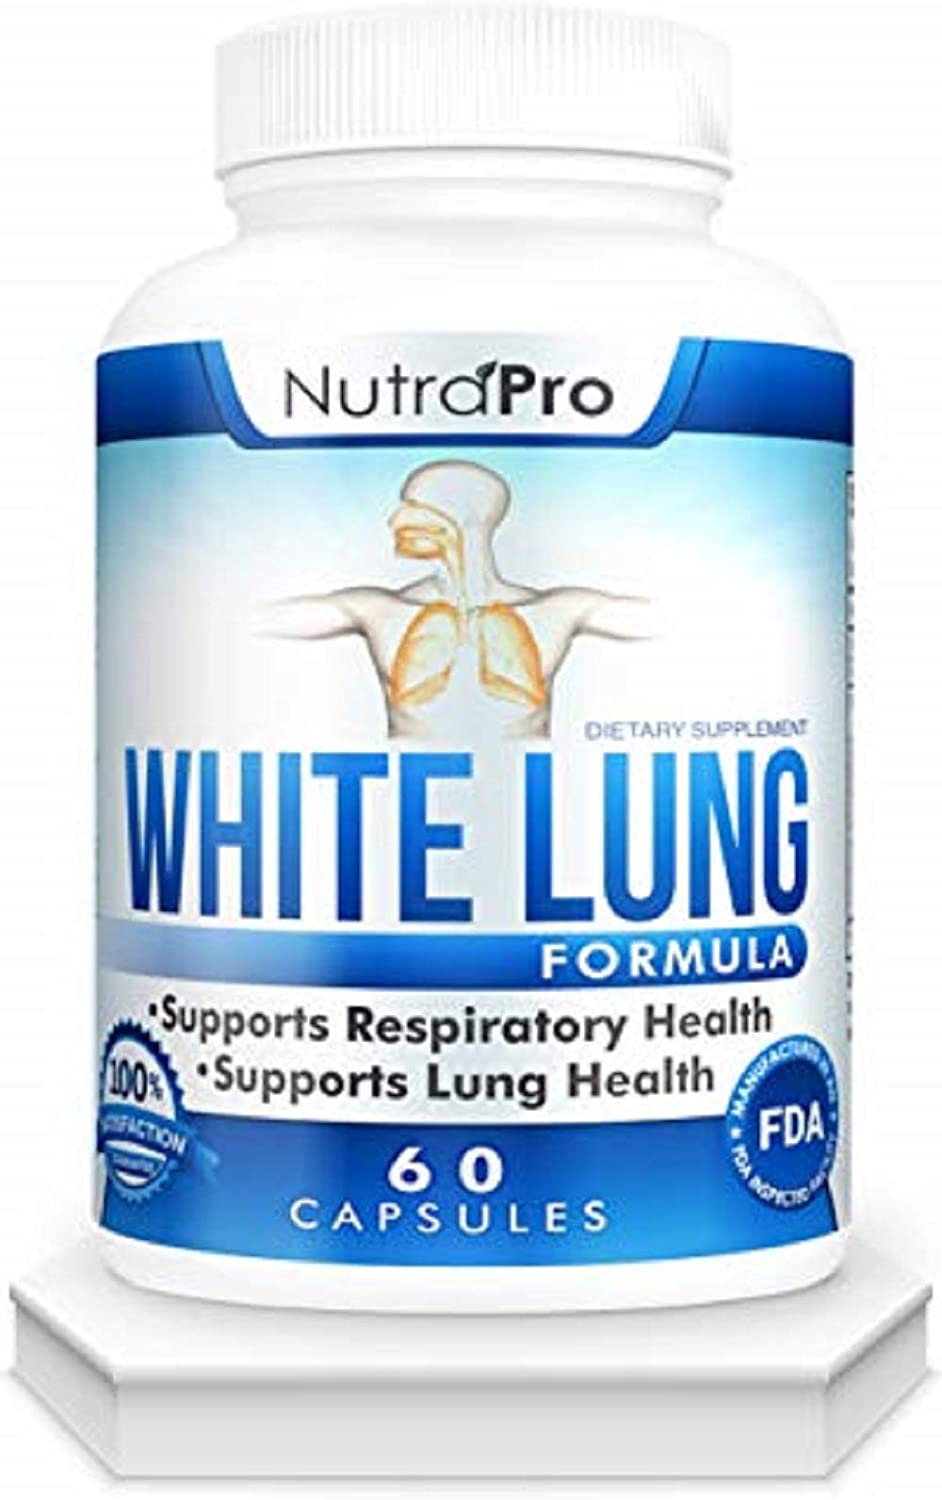 White Lung by NutraPro - Lung Cleanse & Detox.Support Lung Health. Supports Respiratory Health. 60 Capsule - Made in GMP Certified Facility.: Health & Personal Care